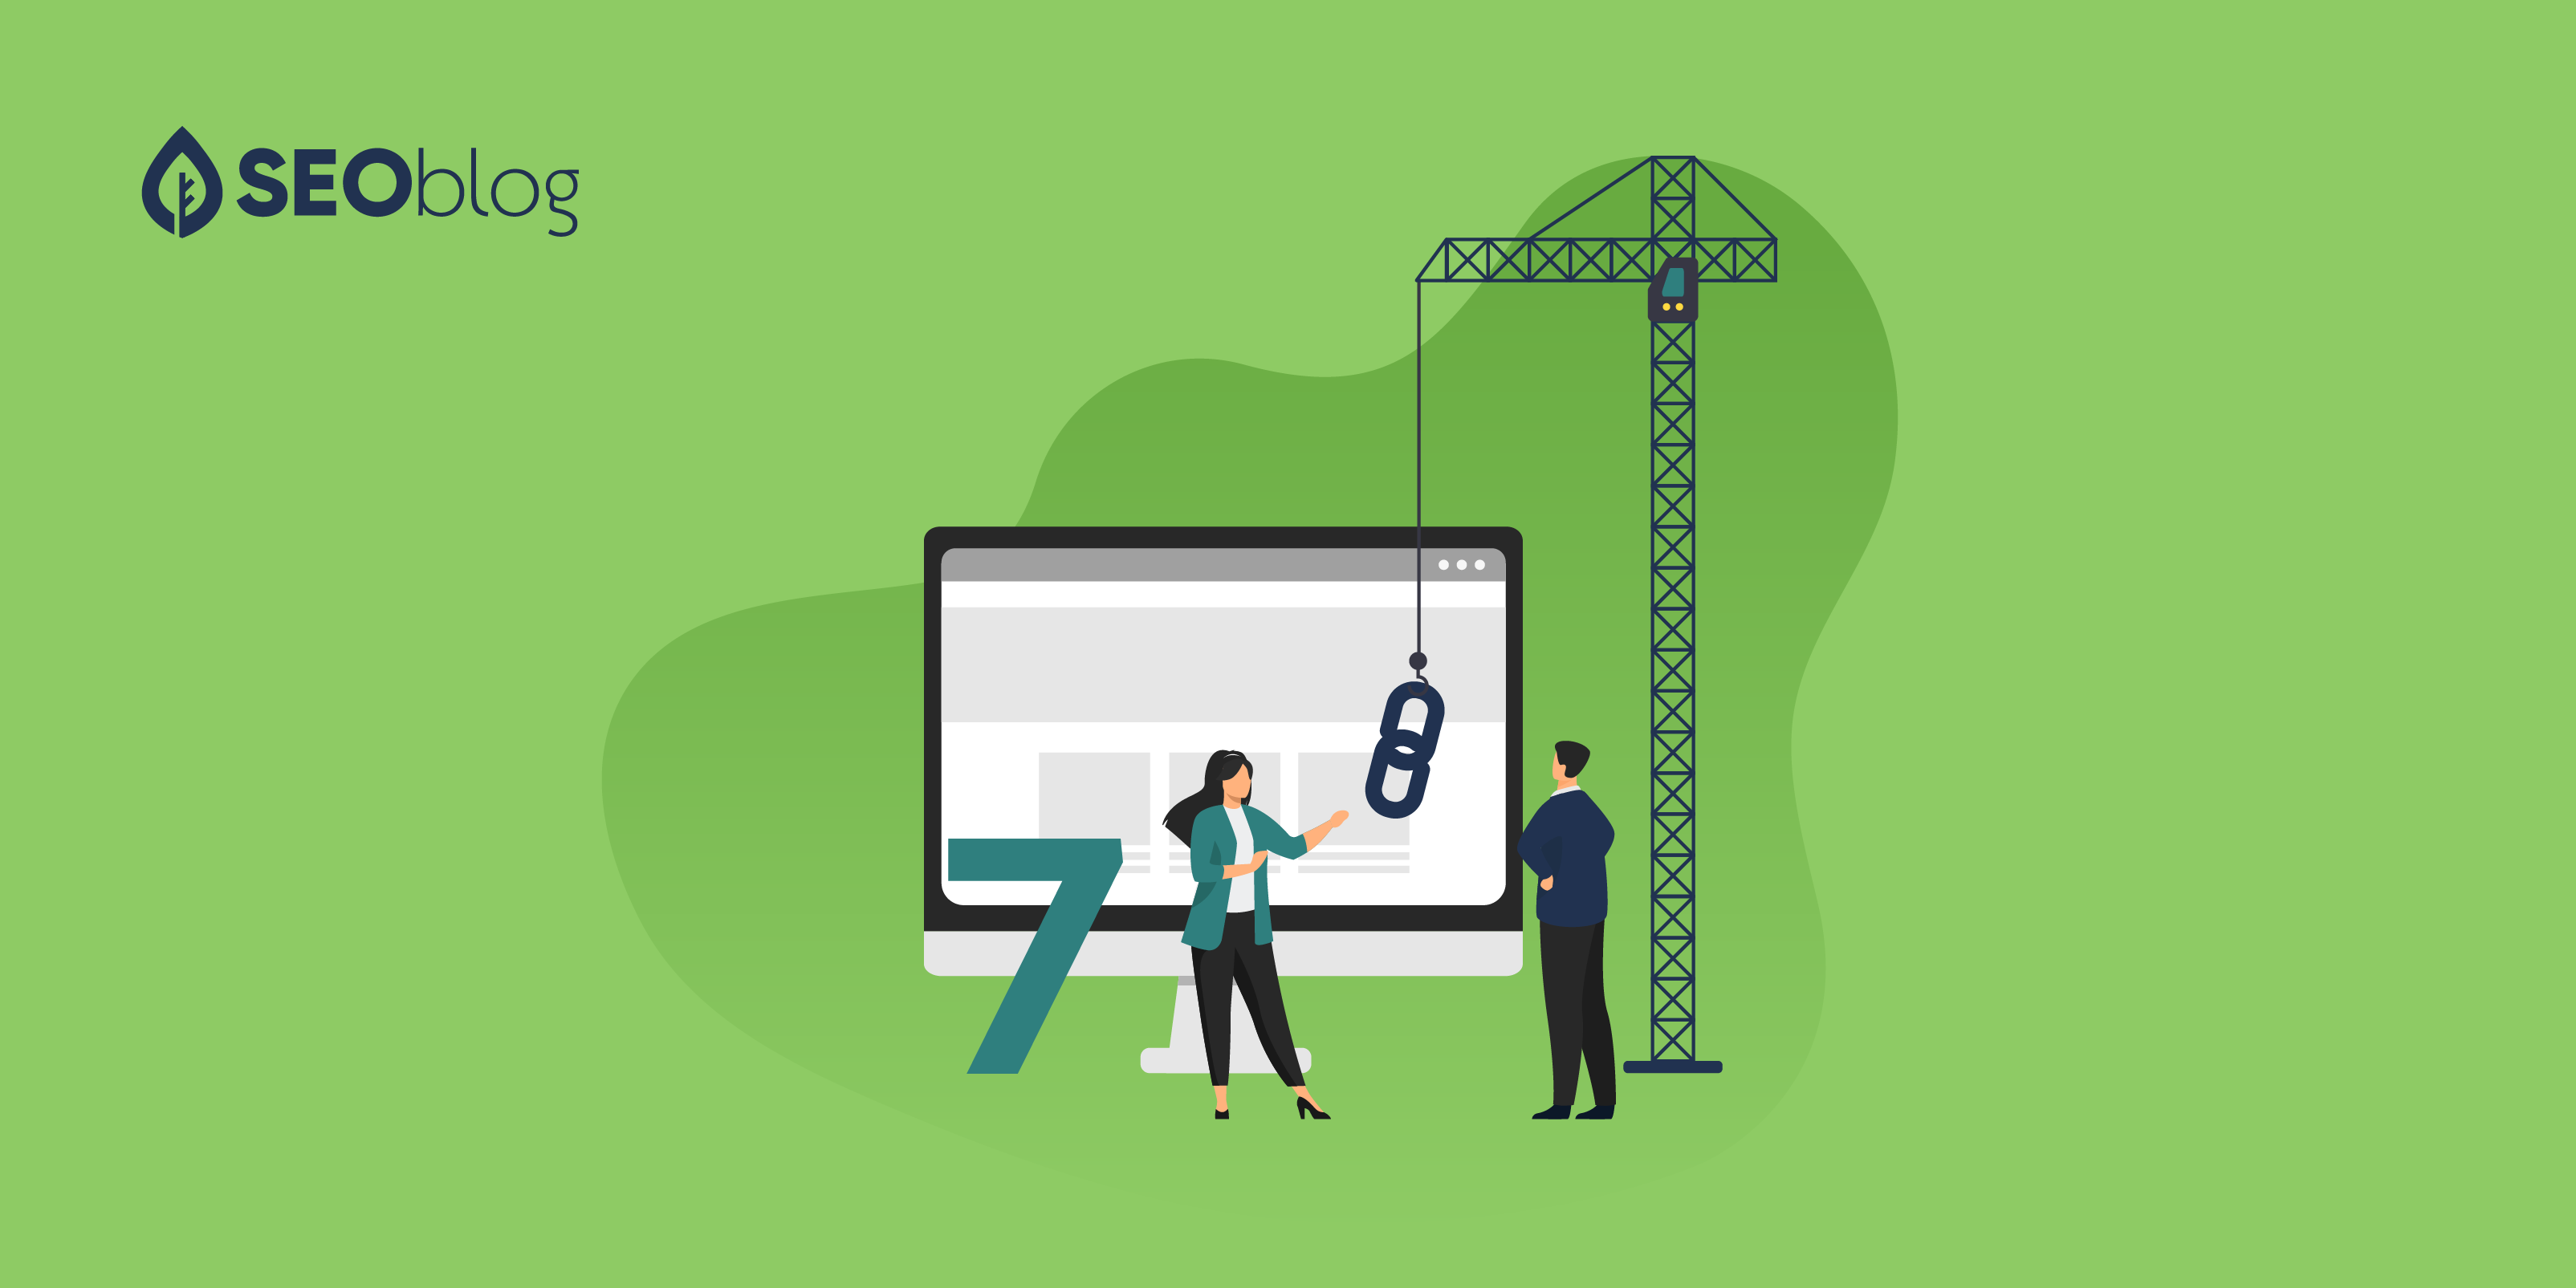 7 Strategies to Diversify Your Link Building Plan